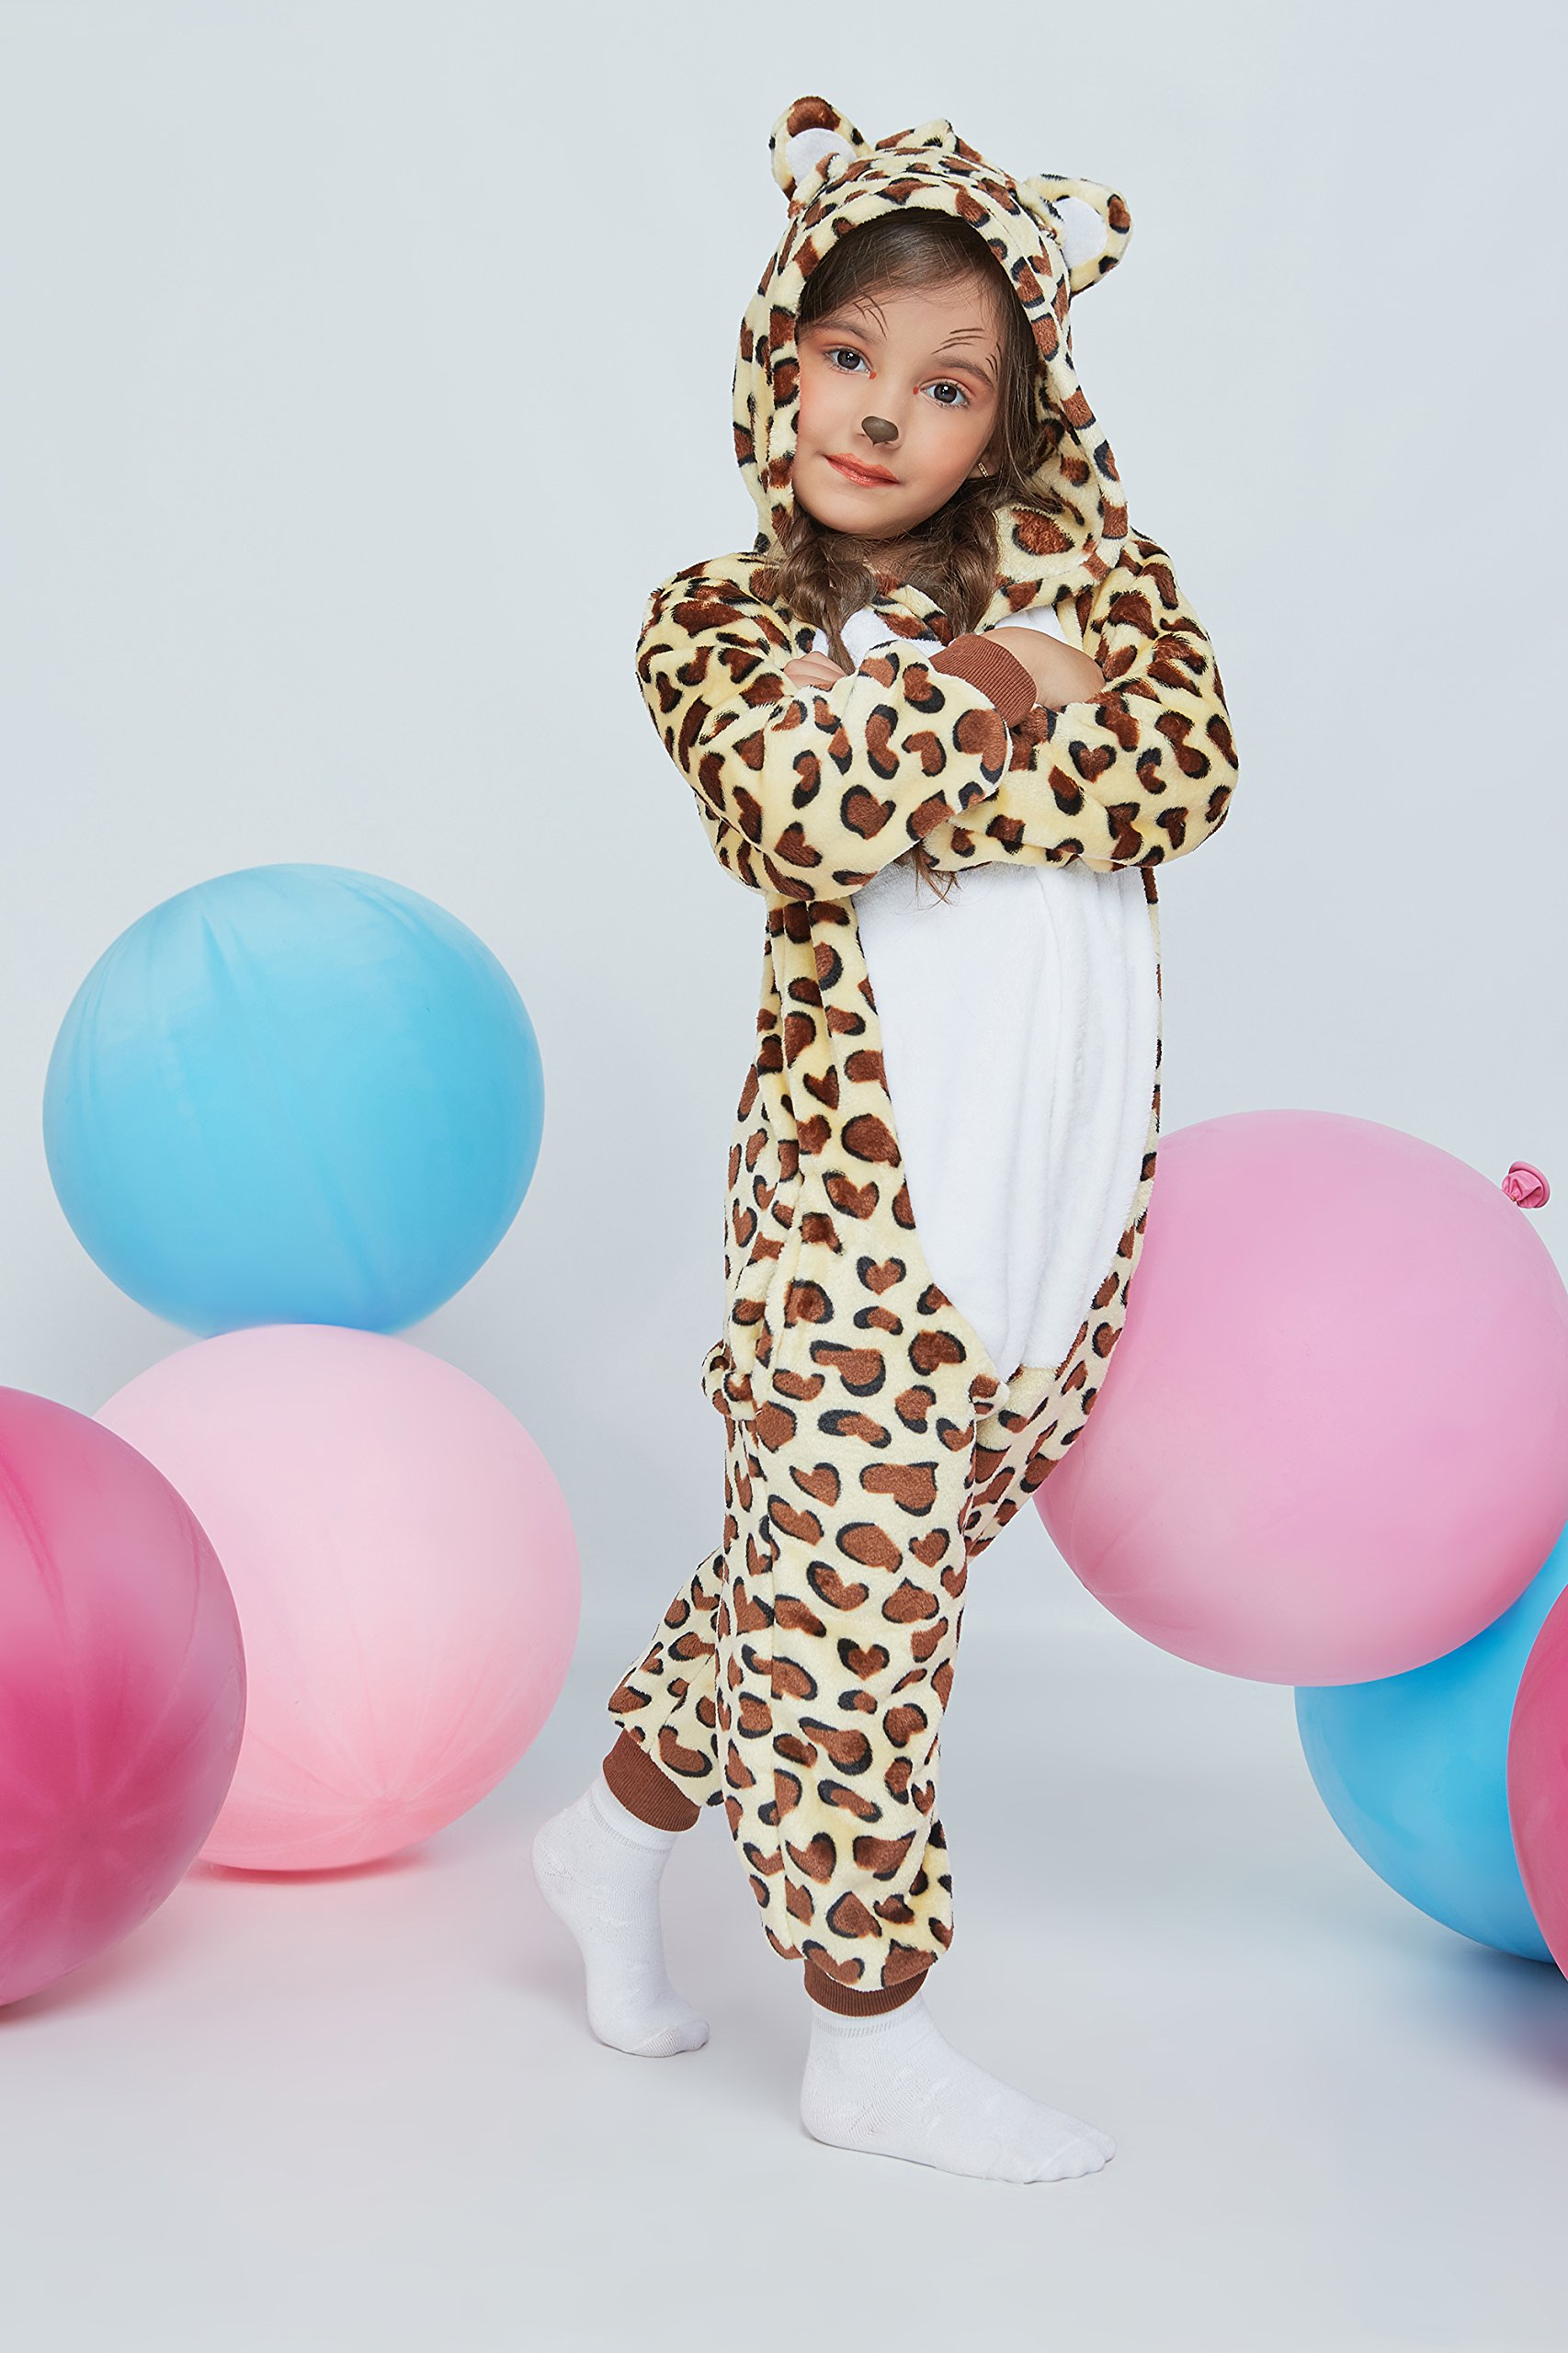 Kids Leopard Kigurumi Animal Onesie Pajamas Plush Onsie One Piece Cosplay Costume (Yellow, Brown, White) by Nothing But Love (Image #5)